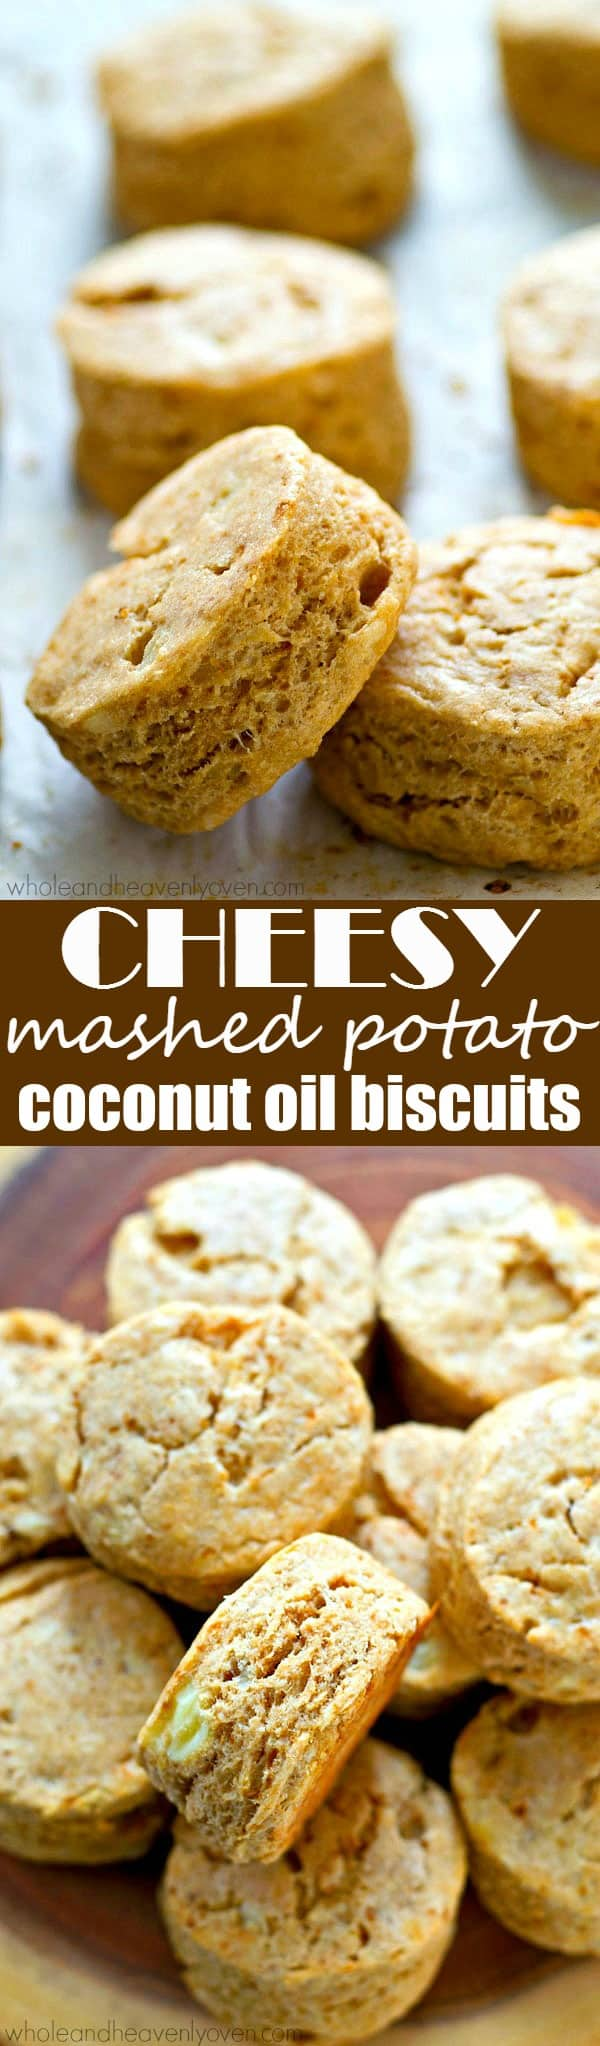 Mashed potatoes take these cheesy coconut oil biscuits OVER the top! They're so unbelievably flaky and so amazing with tons of butter and a bowl of soup!